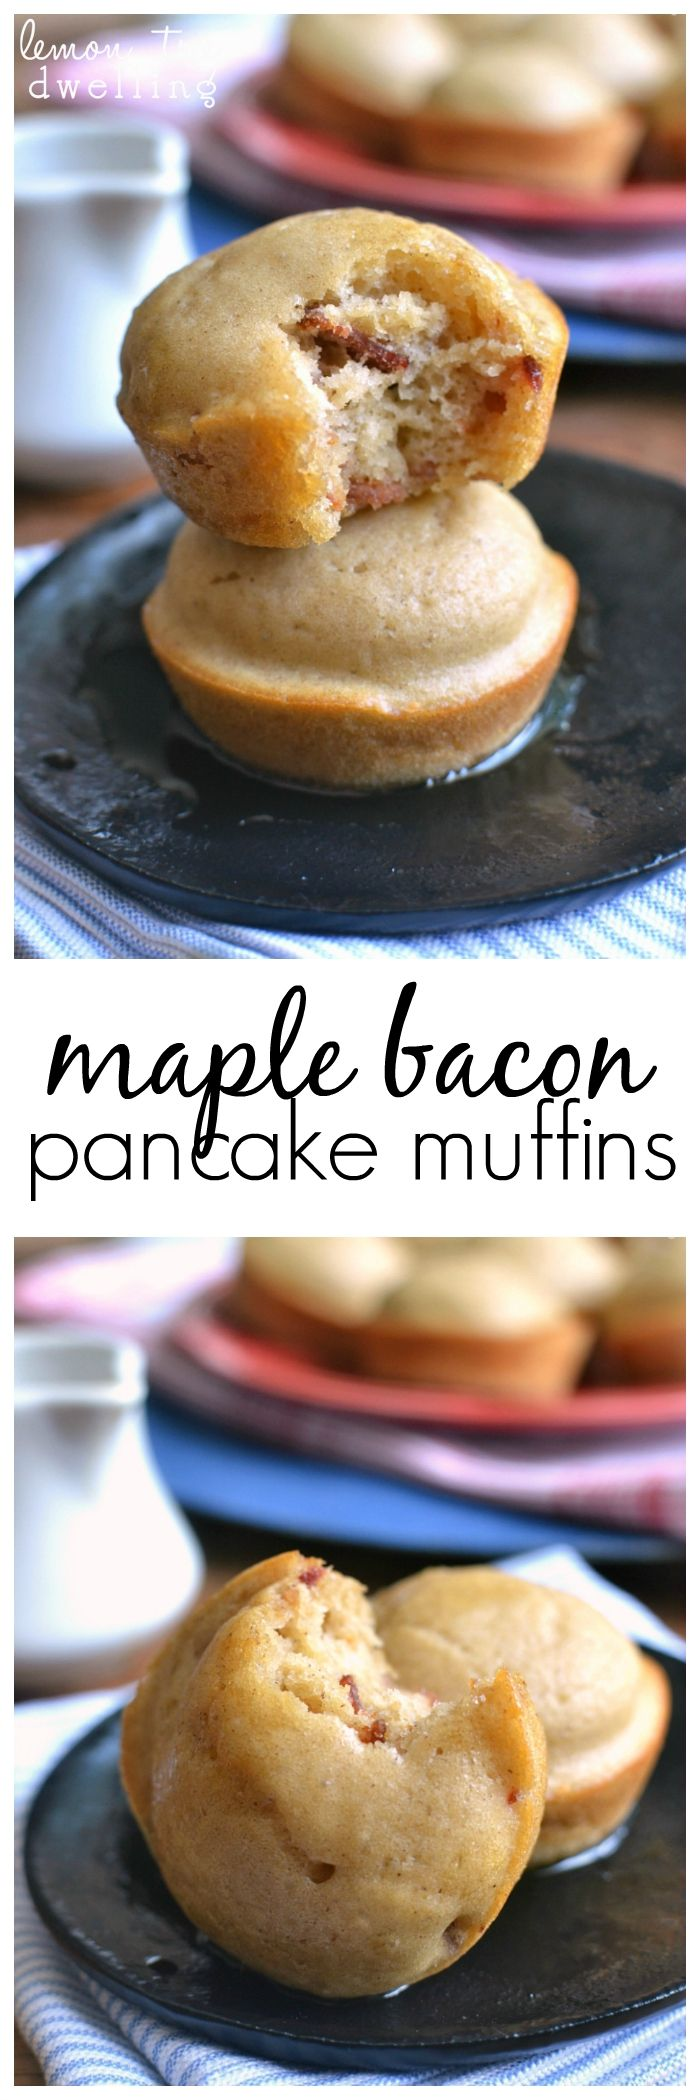 Sweet Maple Bacon Pancake Muffins flavored with maple syrup and real bacon. Serve them warm drizzled with additional syrup or eat them on the go for a quick, easy, and delicious breakfast or snack! Perfect for back to school! #mypicknsave #spon